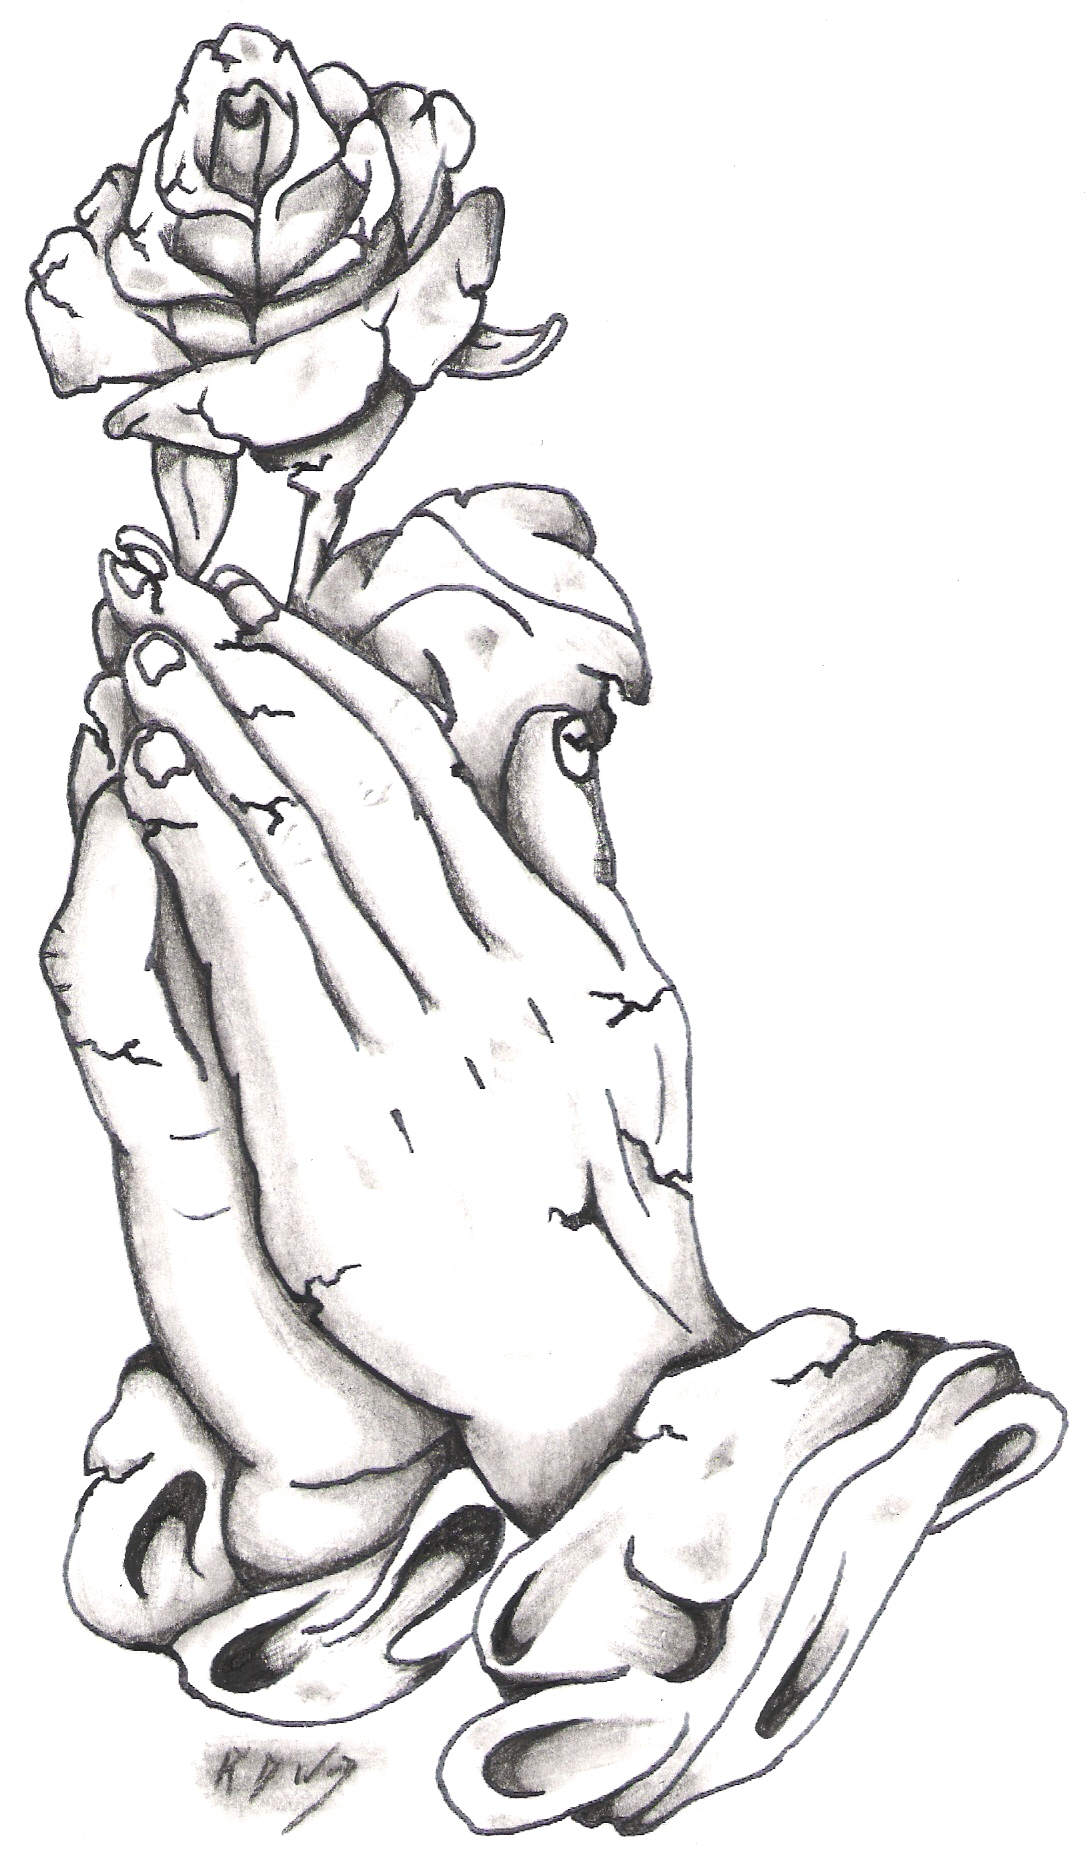 Funeral clipart prayer hand. Praying hands images library